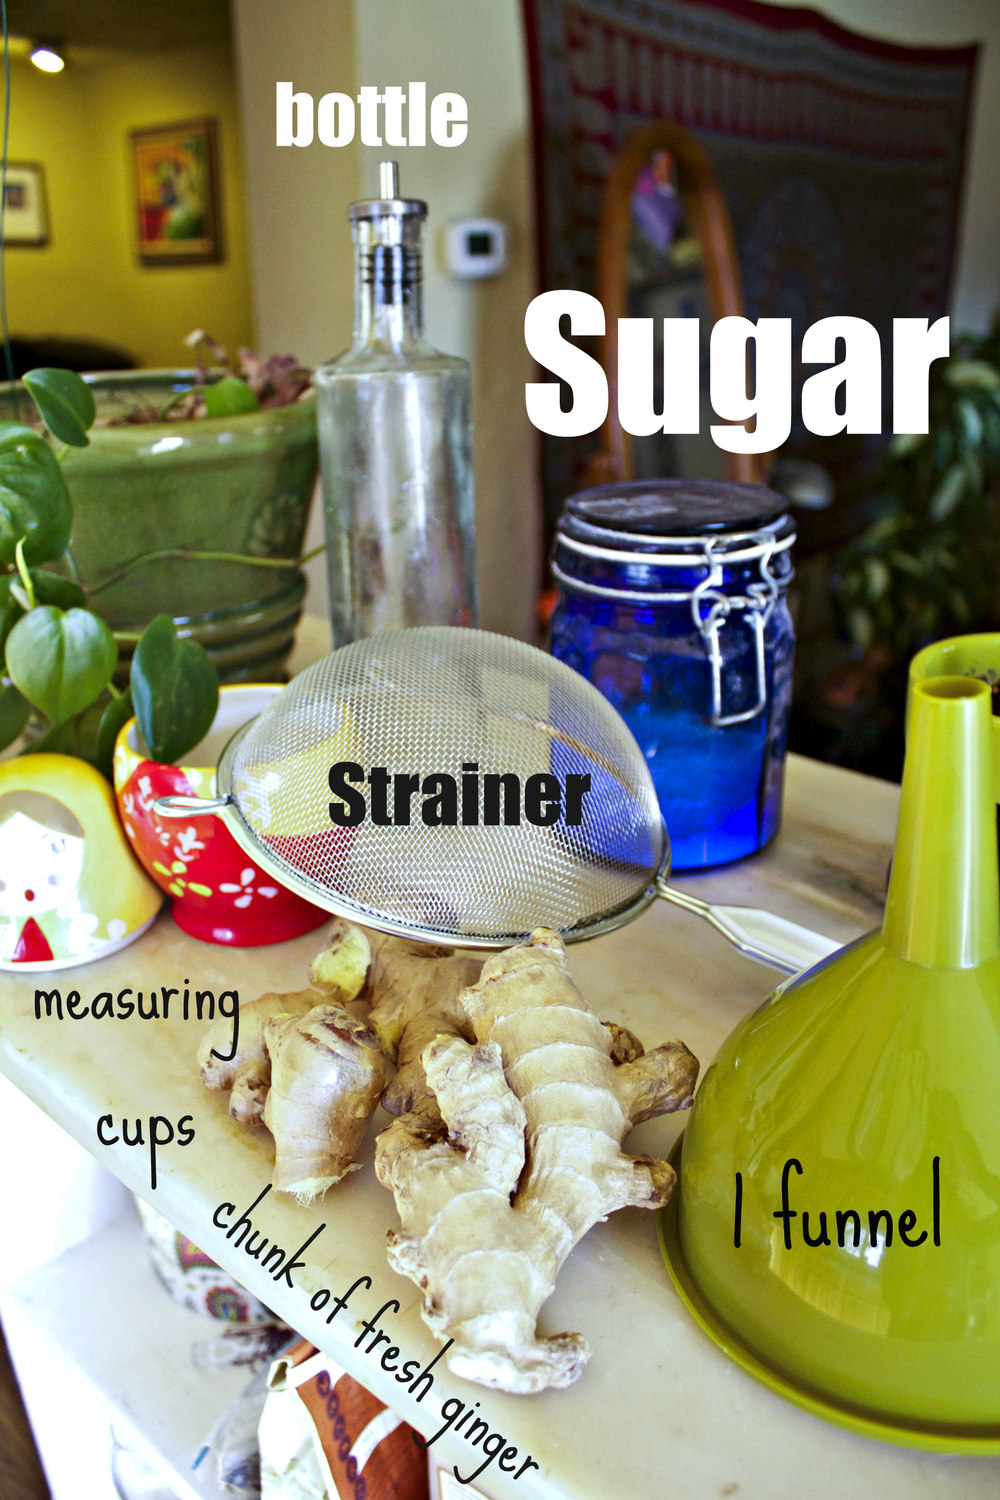 Things you will need. A funnel, fresh ginger, measuring cups, sugar, water, a pot, a container like bottle